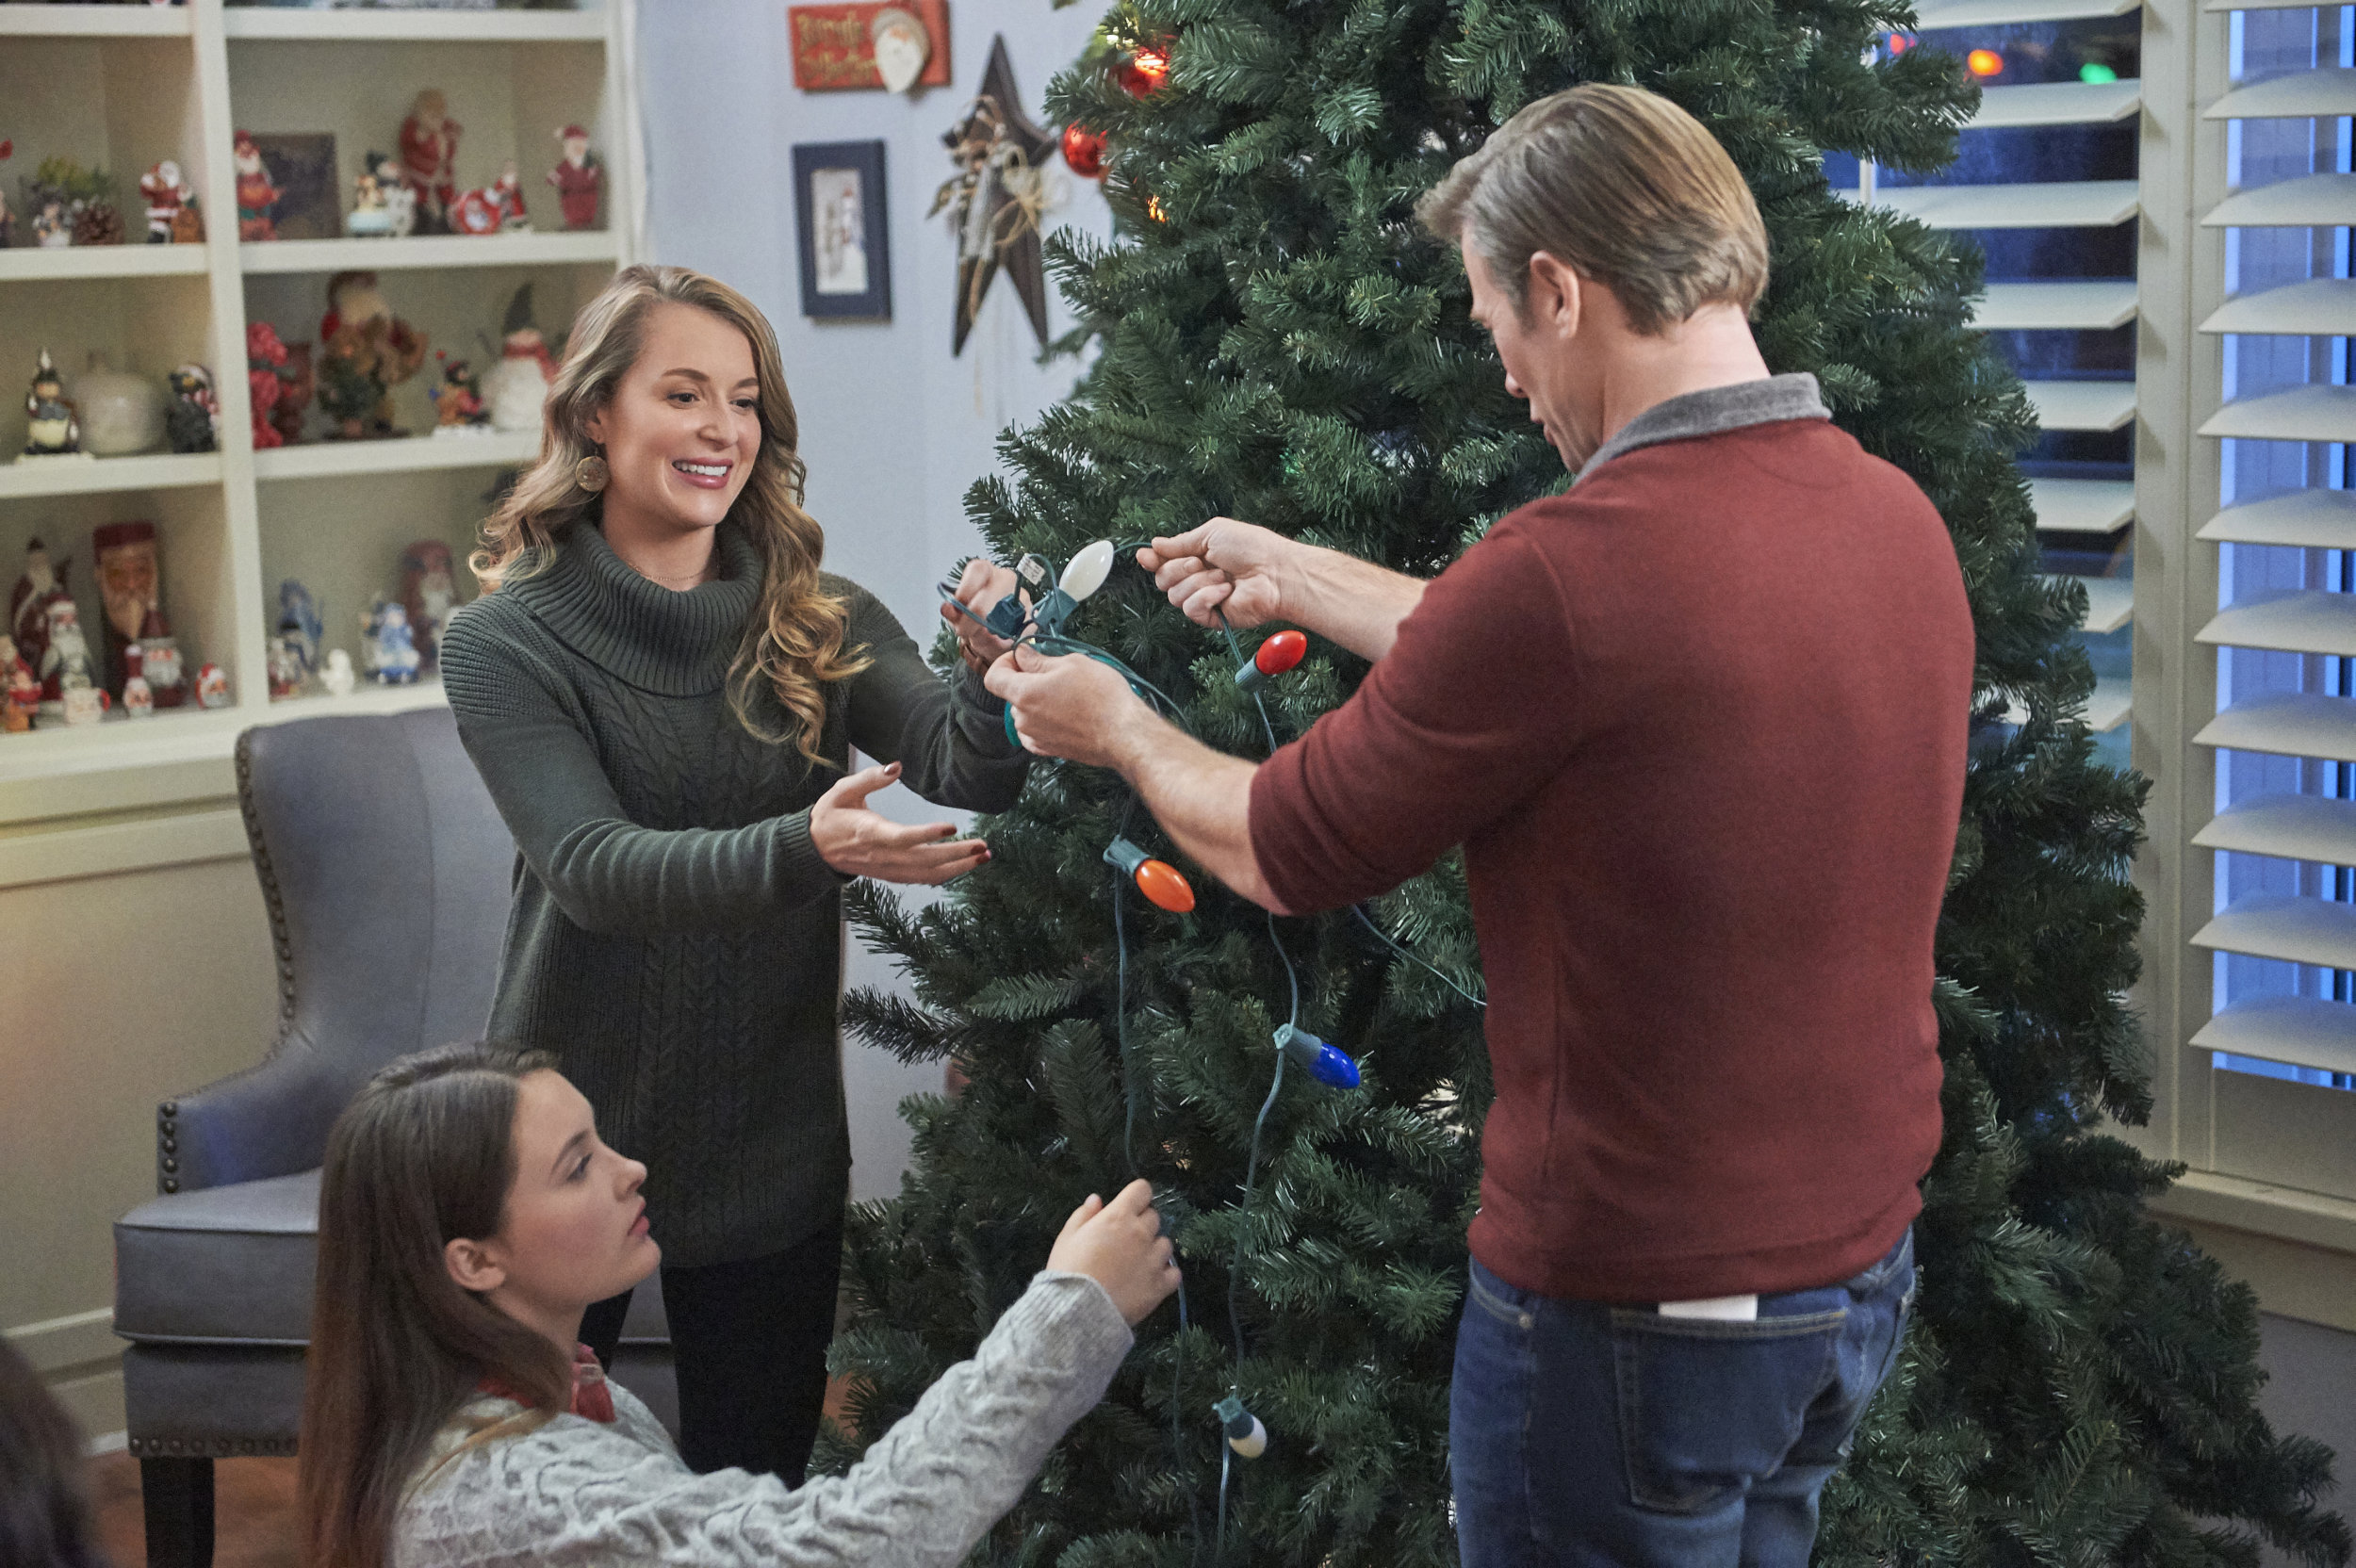 Preview + Sneak Peek - Christmas Made to Order   Hallmark Channel